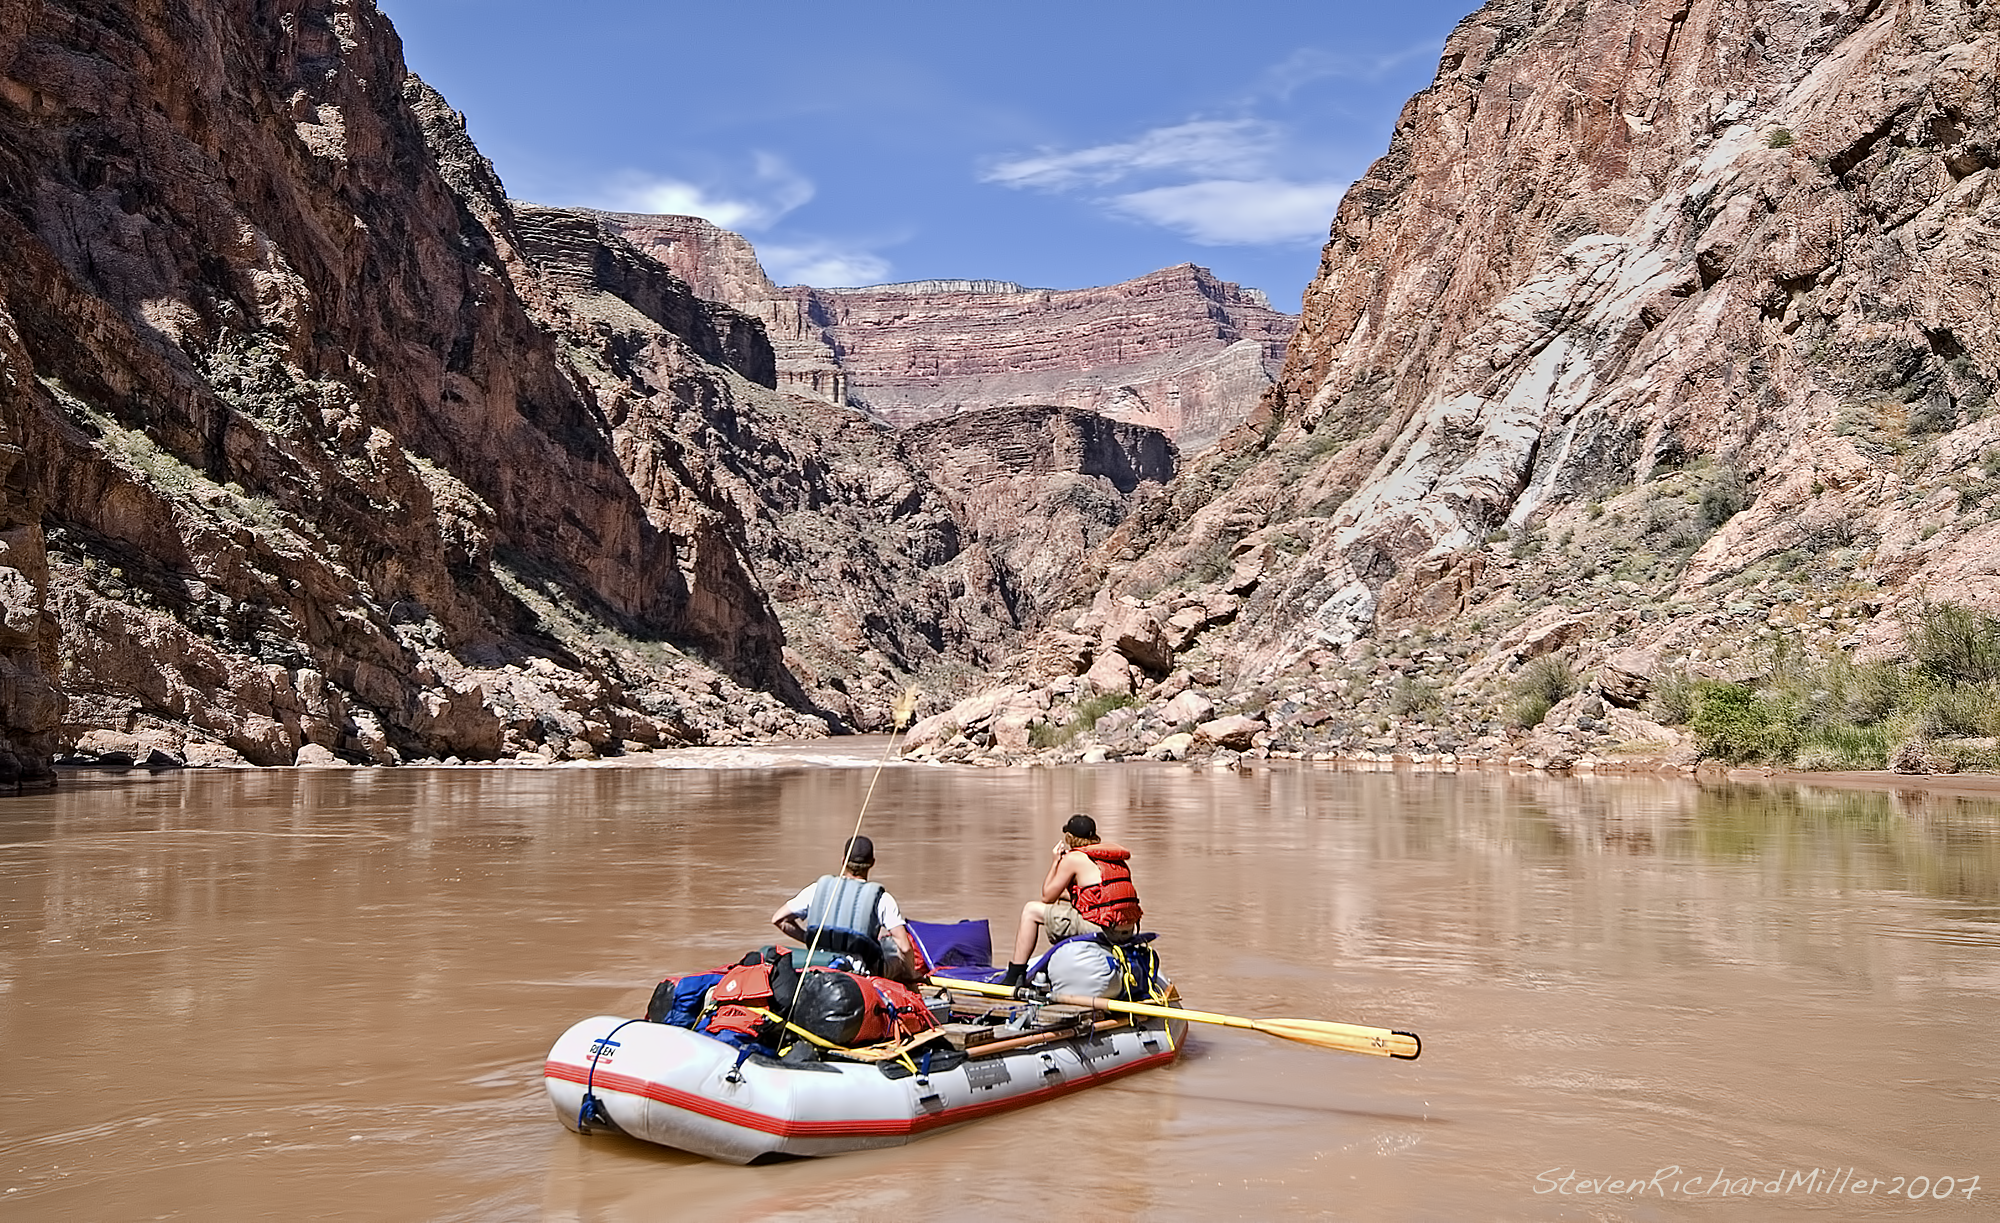 The Colorado River In The Grand Canyon The Gems Part 2